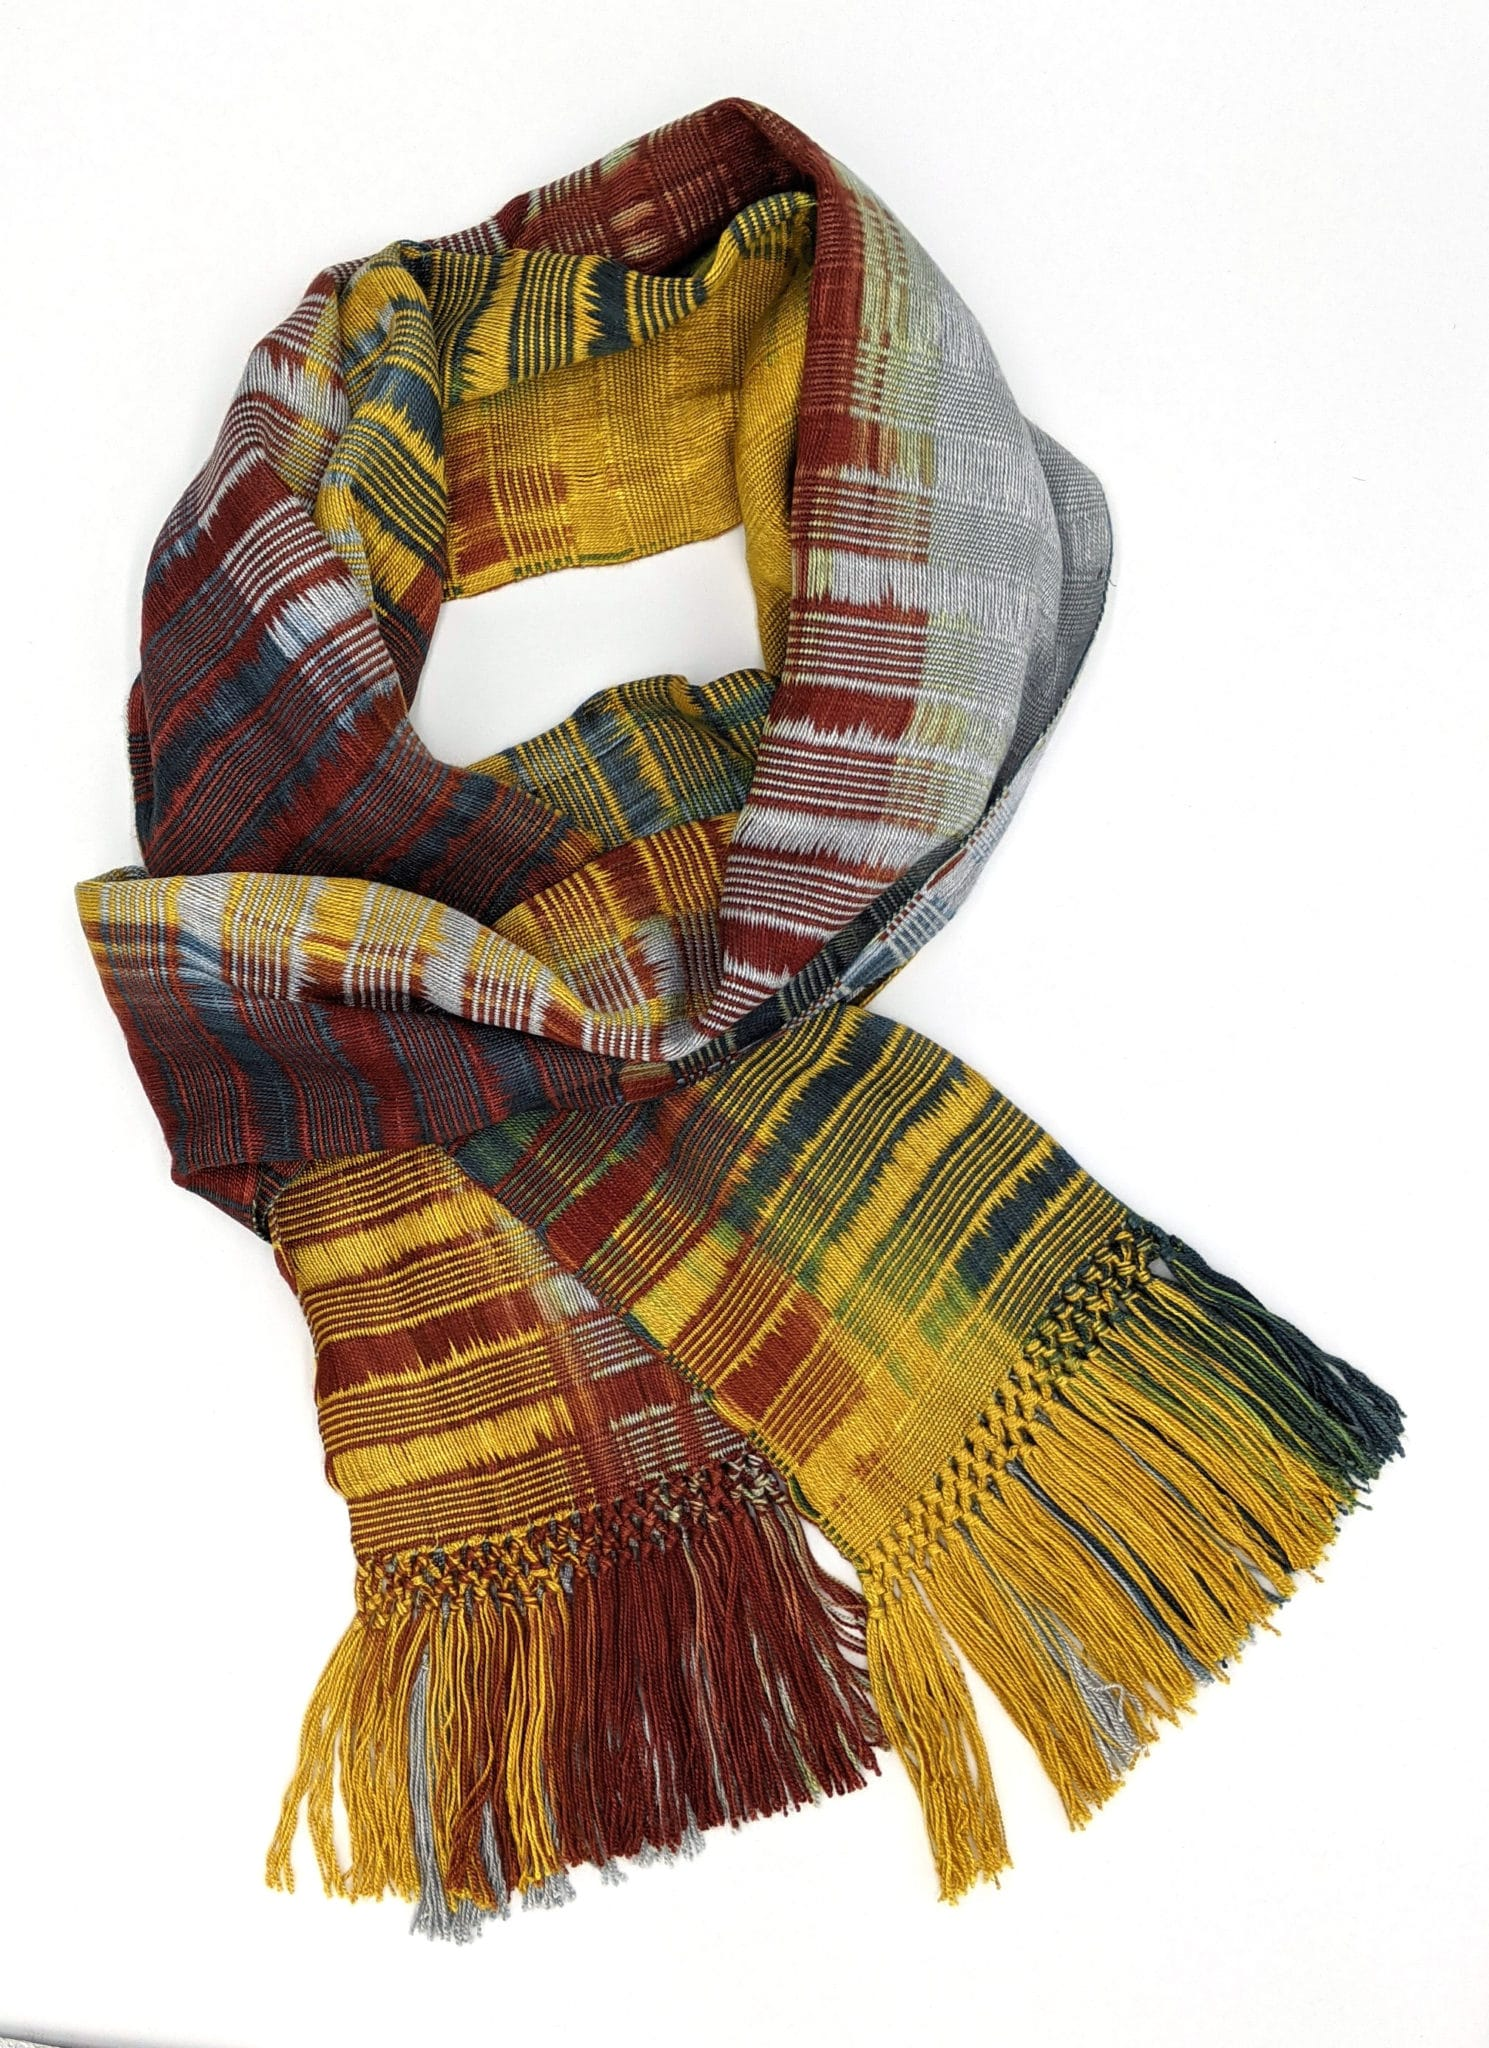 Gold, Burgundy, Black and Gray Lightweight Bamboo Handwoven Scarf 8 x 68